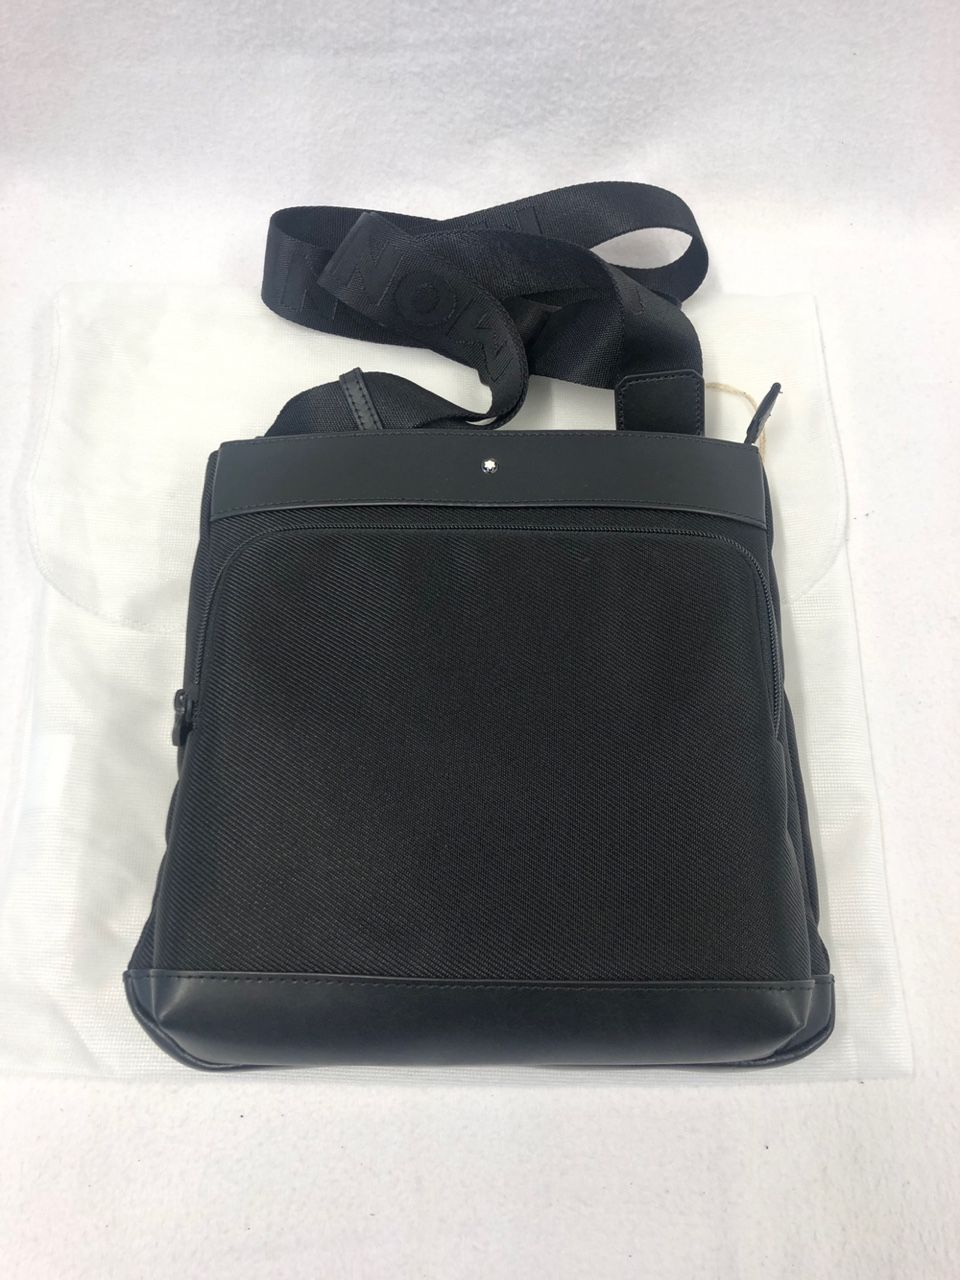 My Montblanc Nightflight Envelope Bag 118254